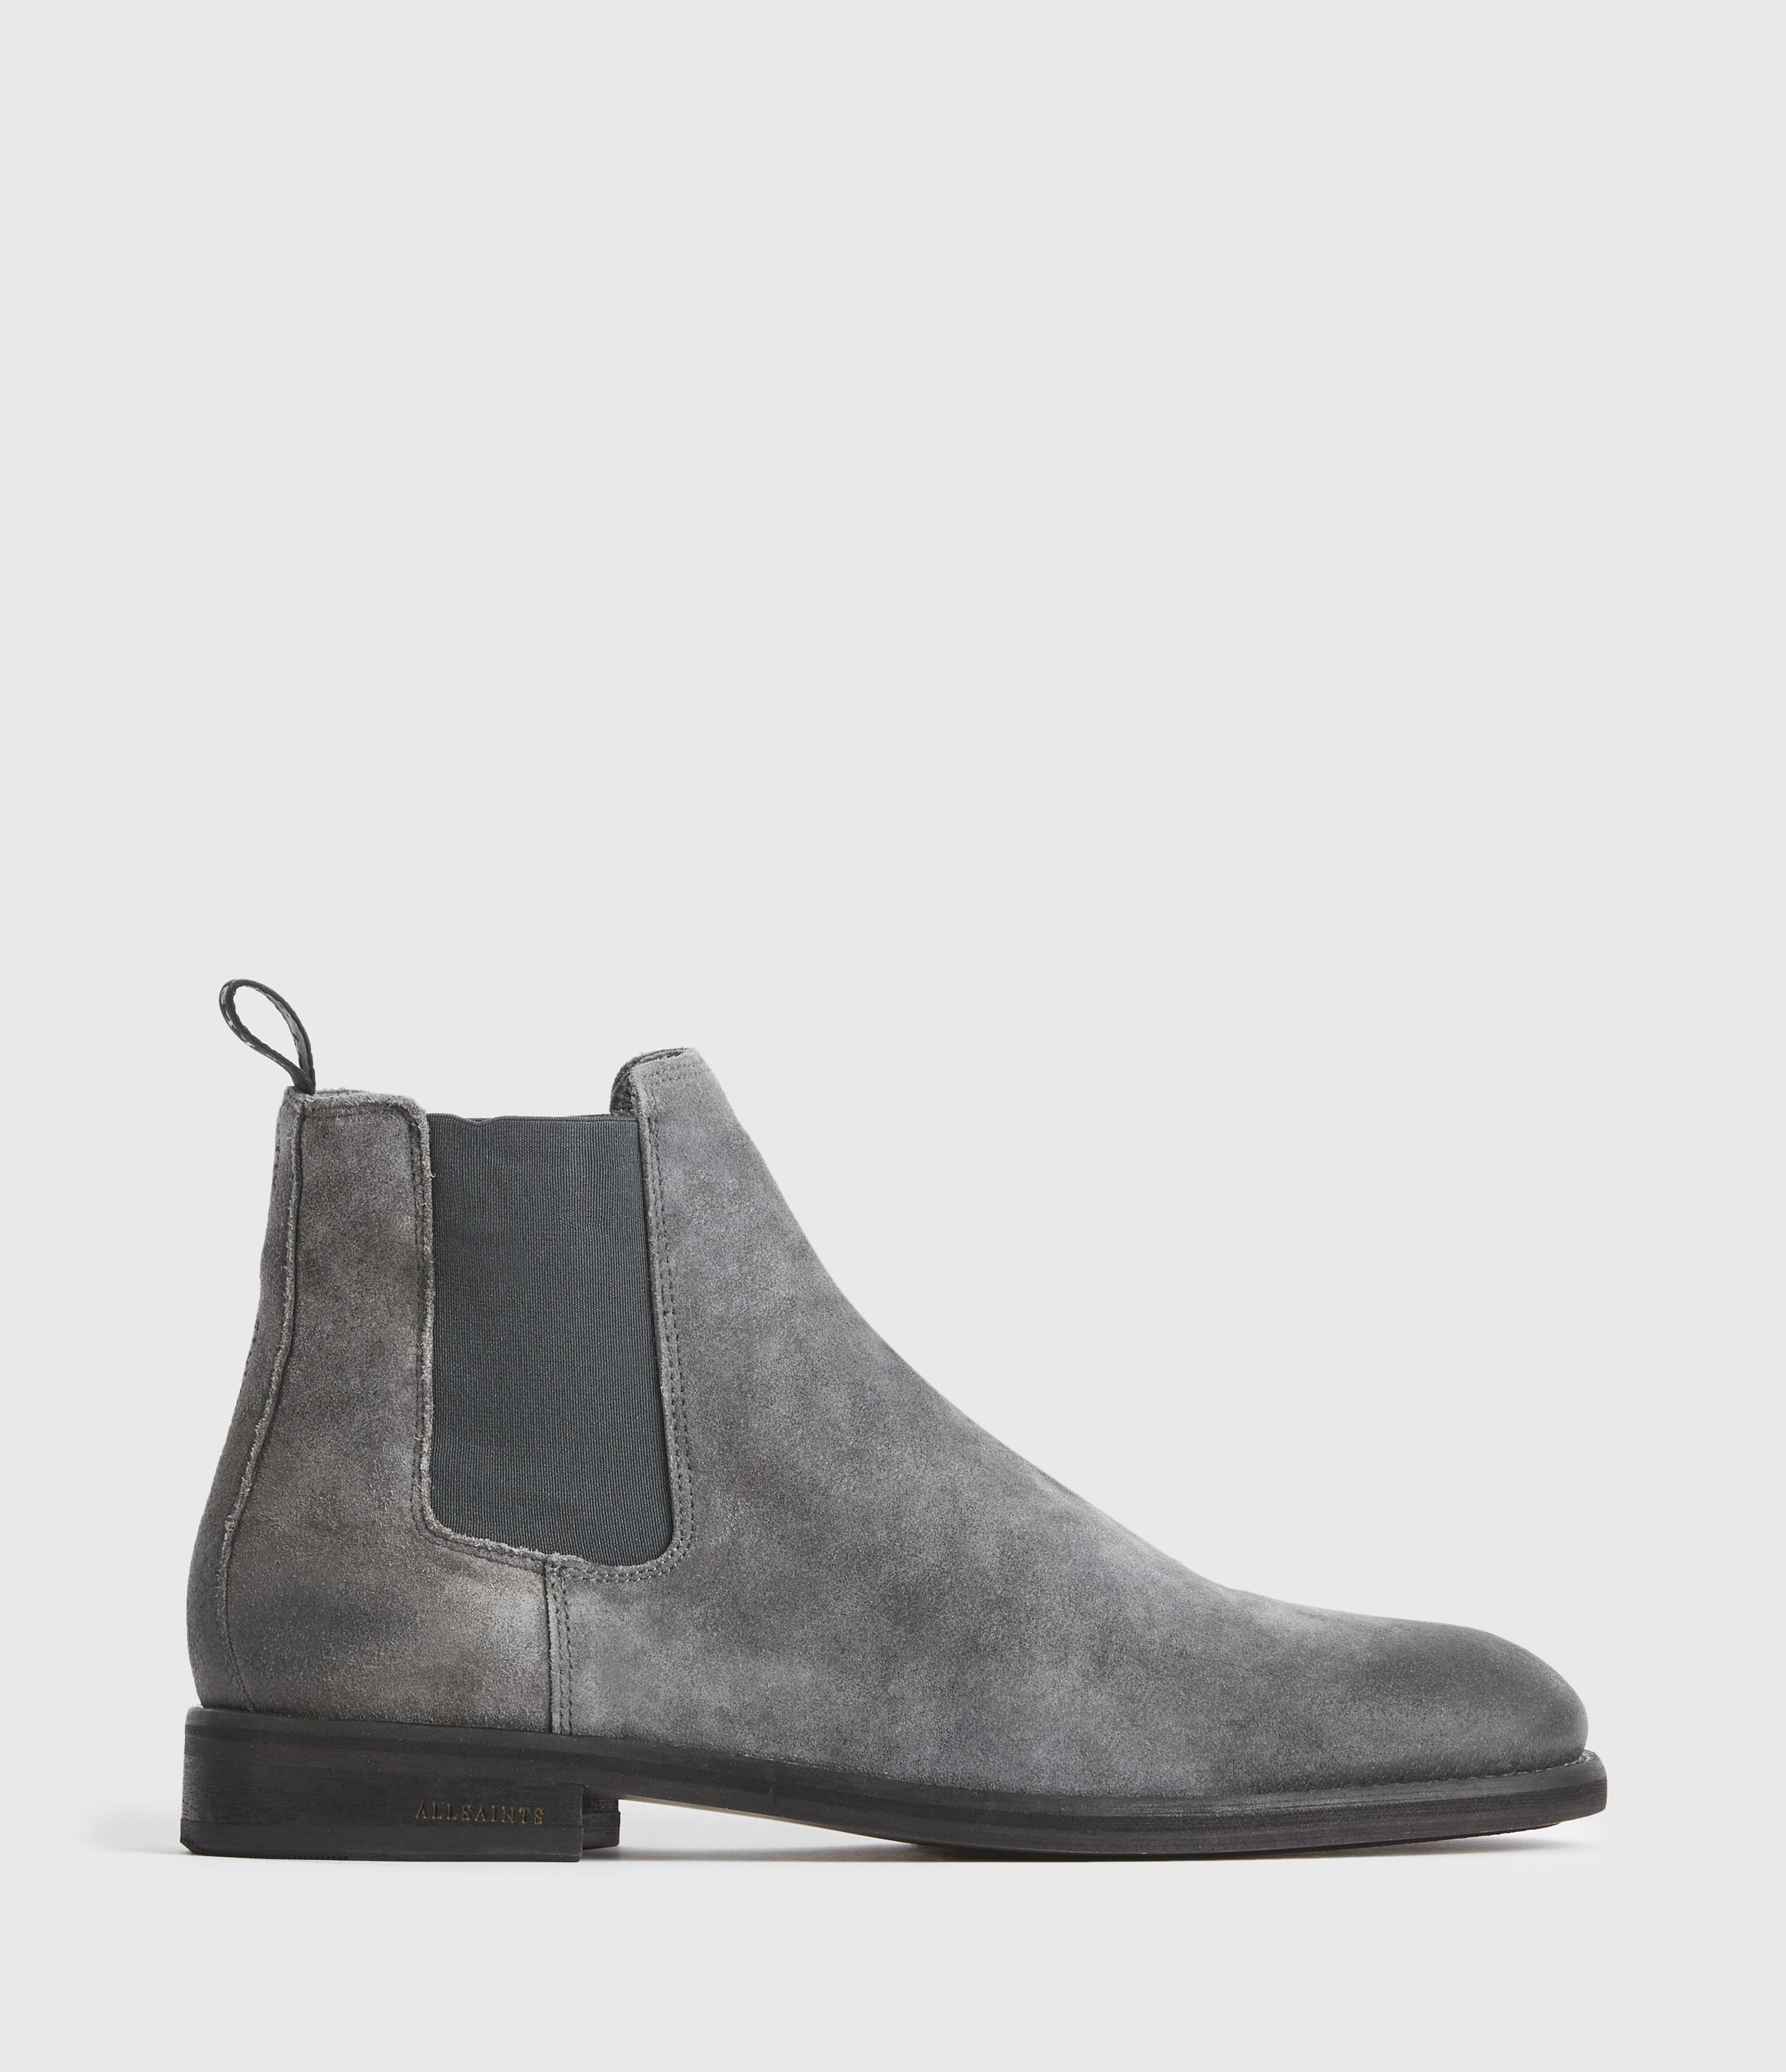 AllSaints Harley Suede Boots